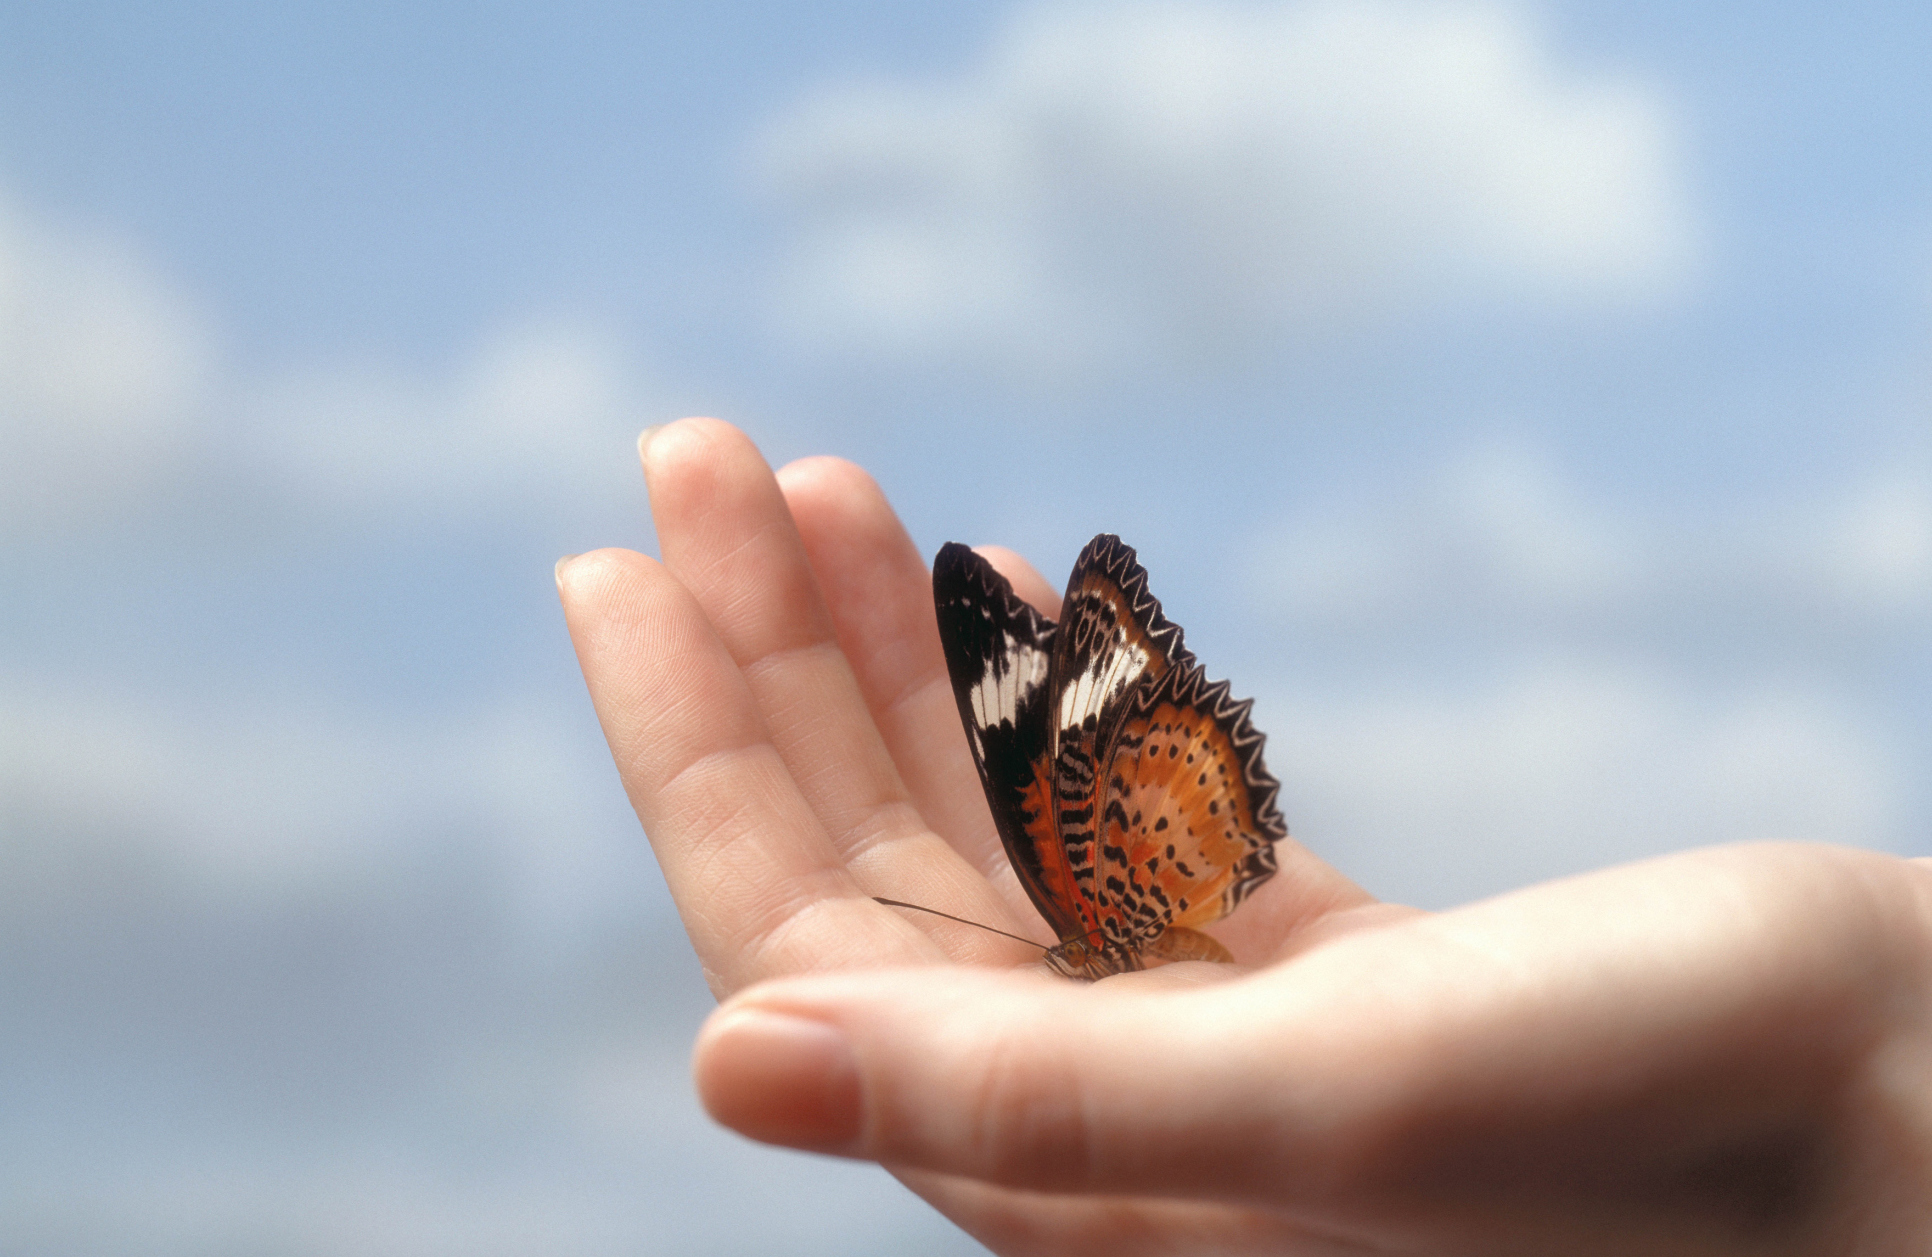 Butterfly in hand pictures Butterfly (The Hollies album) - Wikipedia